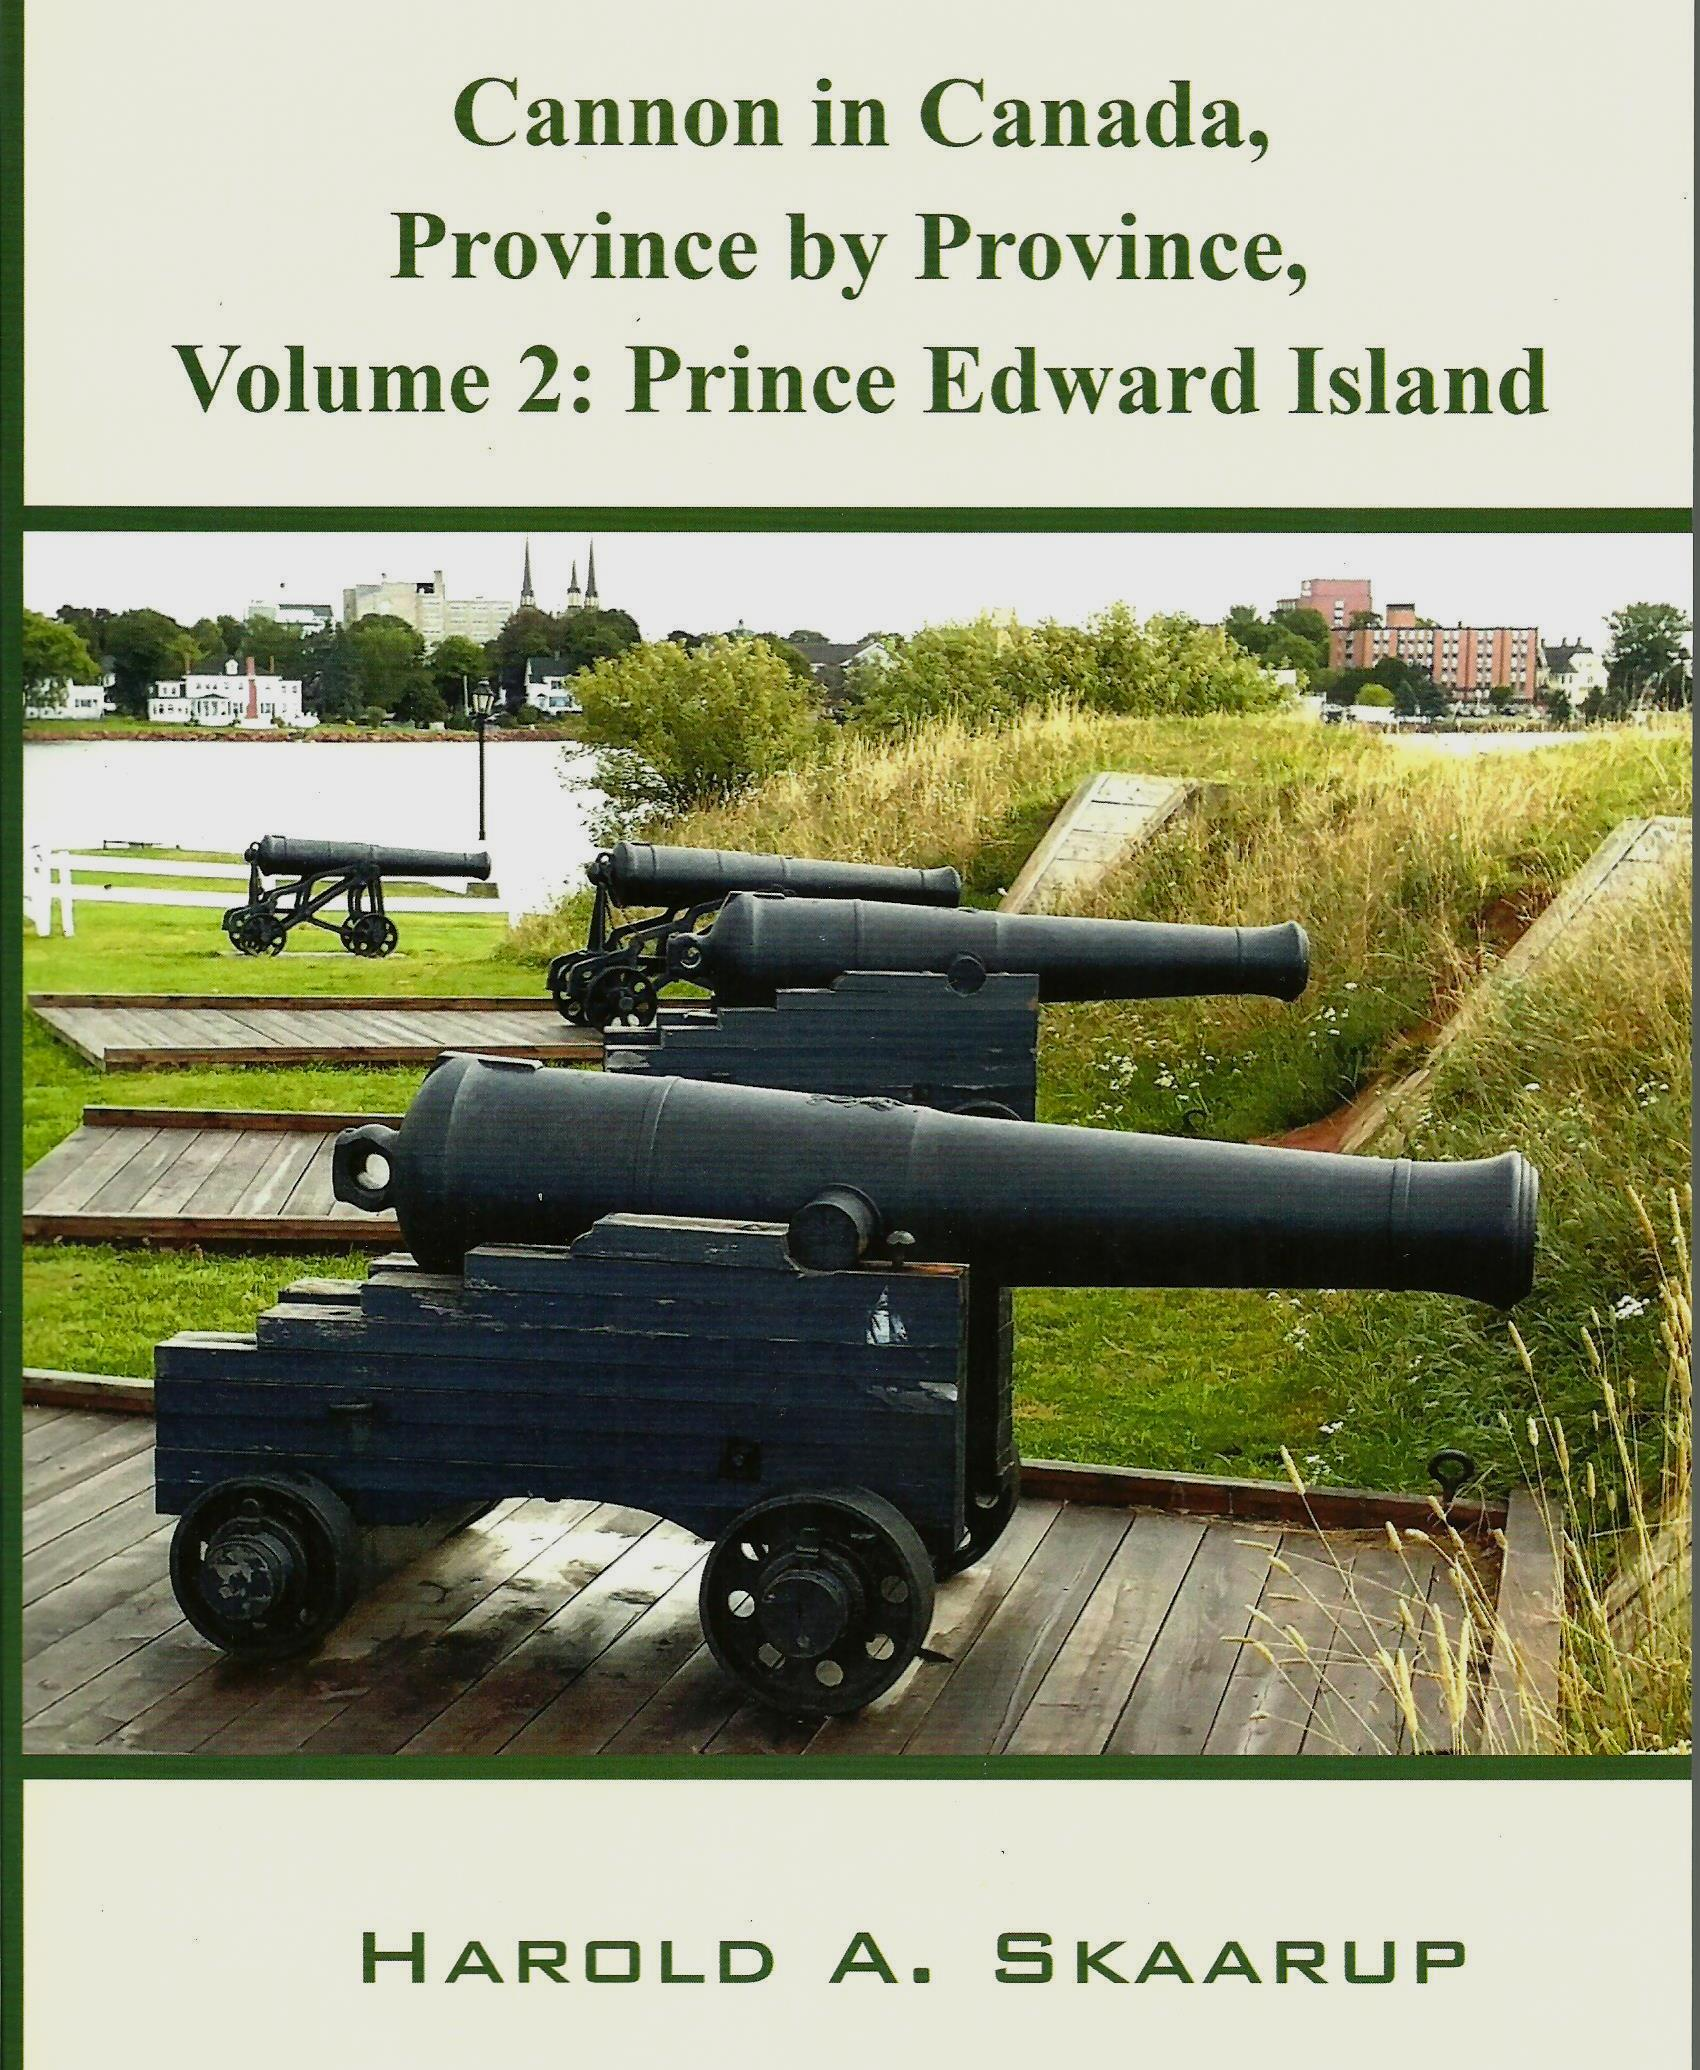 Cannon in Canada, Province by Province, Volume 2: Prince Edward Island